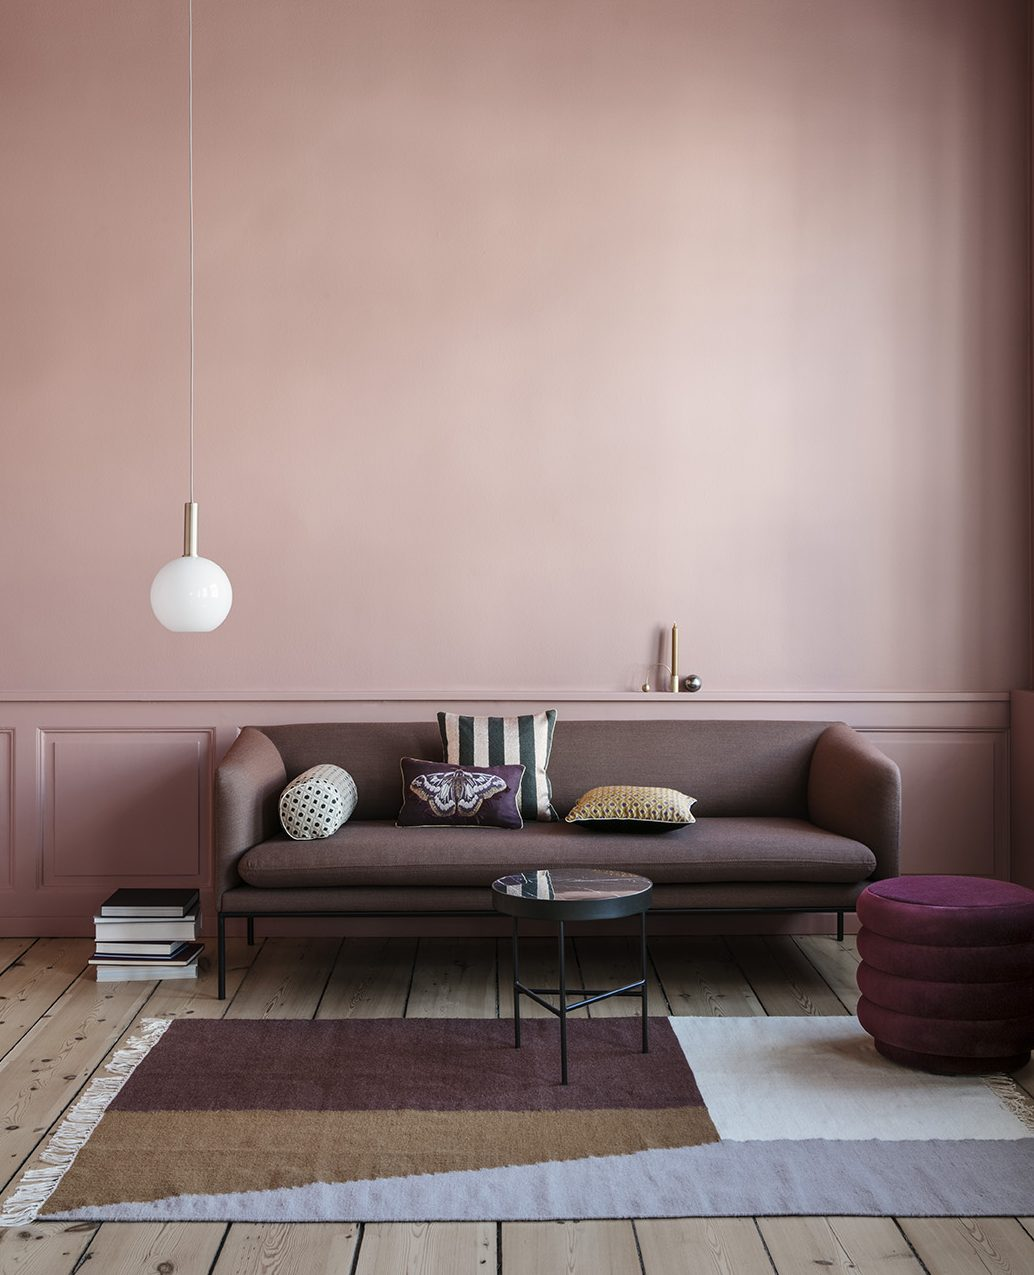 THE HOME // ferm LIVING // Automne/Hiver 17-18